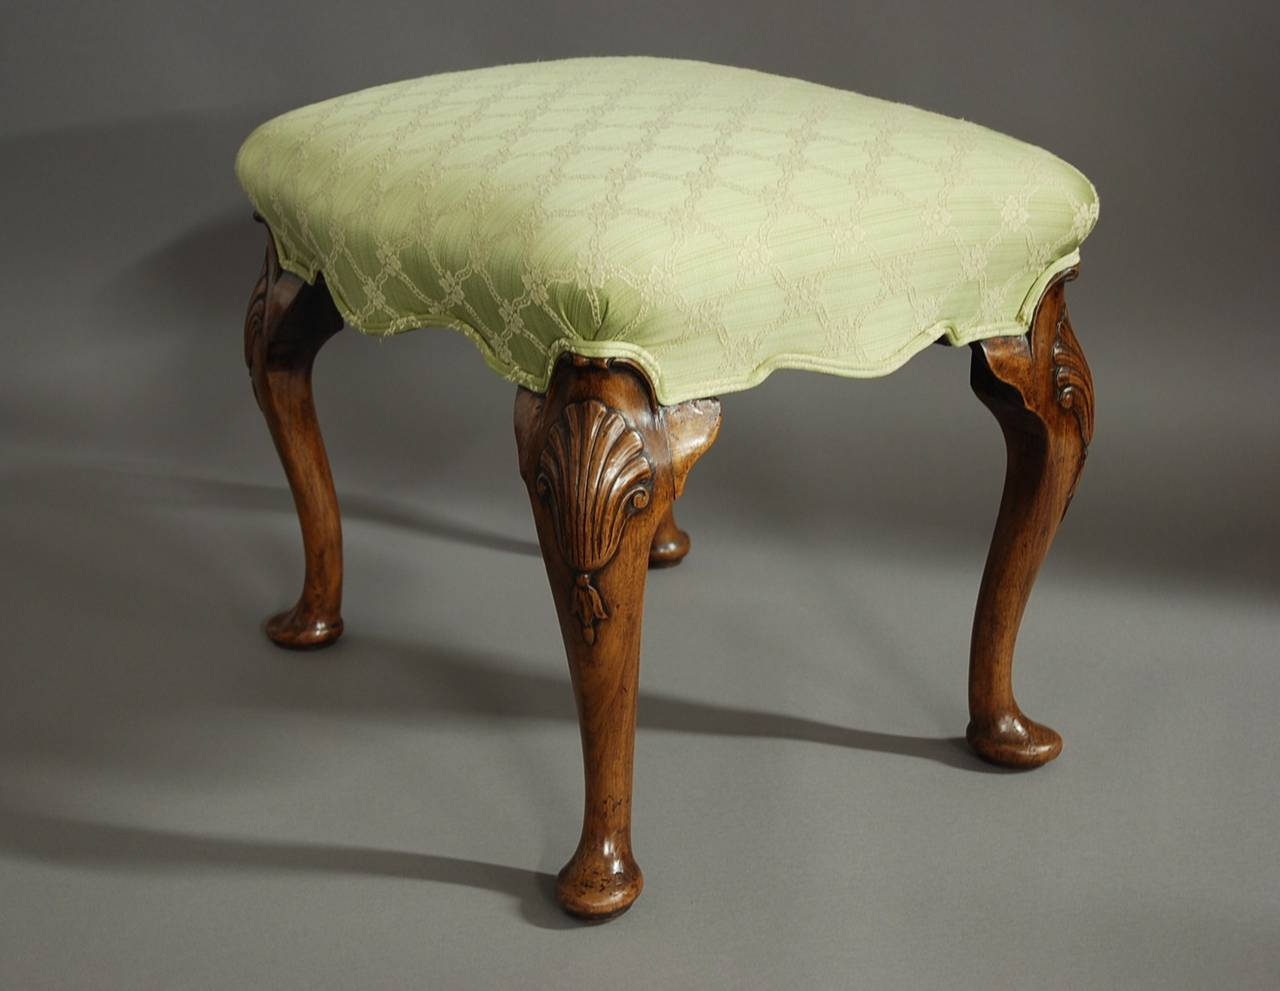 Walnut cabriole leg stool in the queen anne style at 1stdibs for Stile queen anne